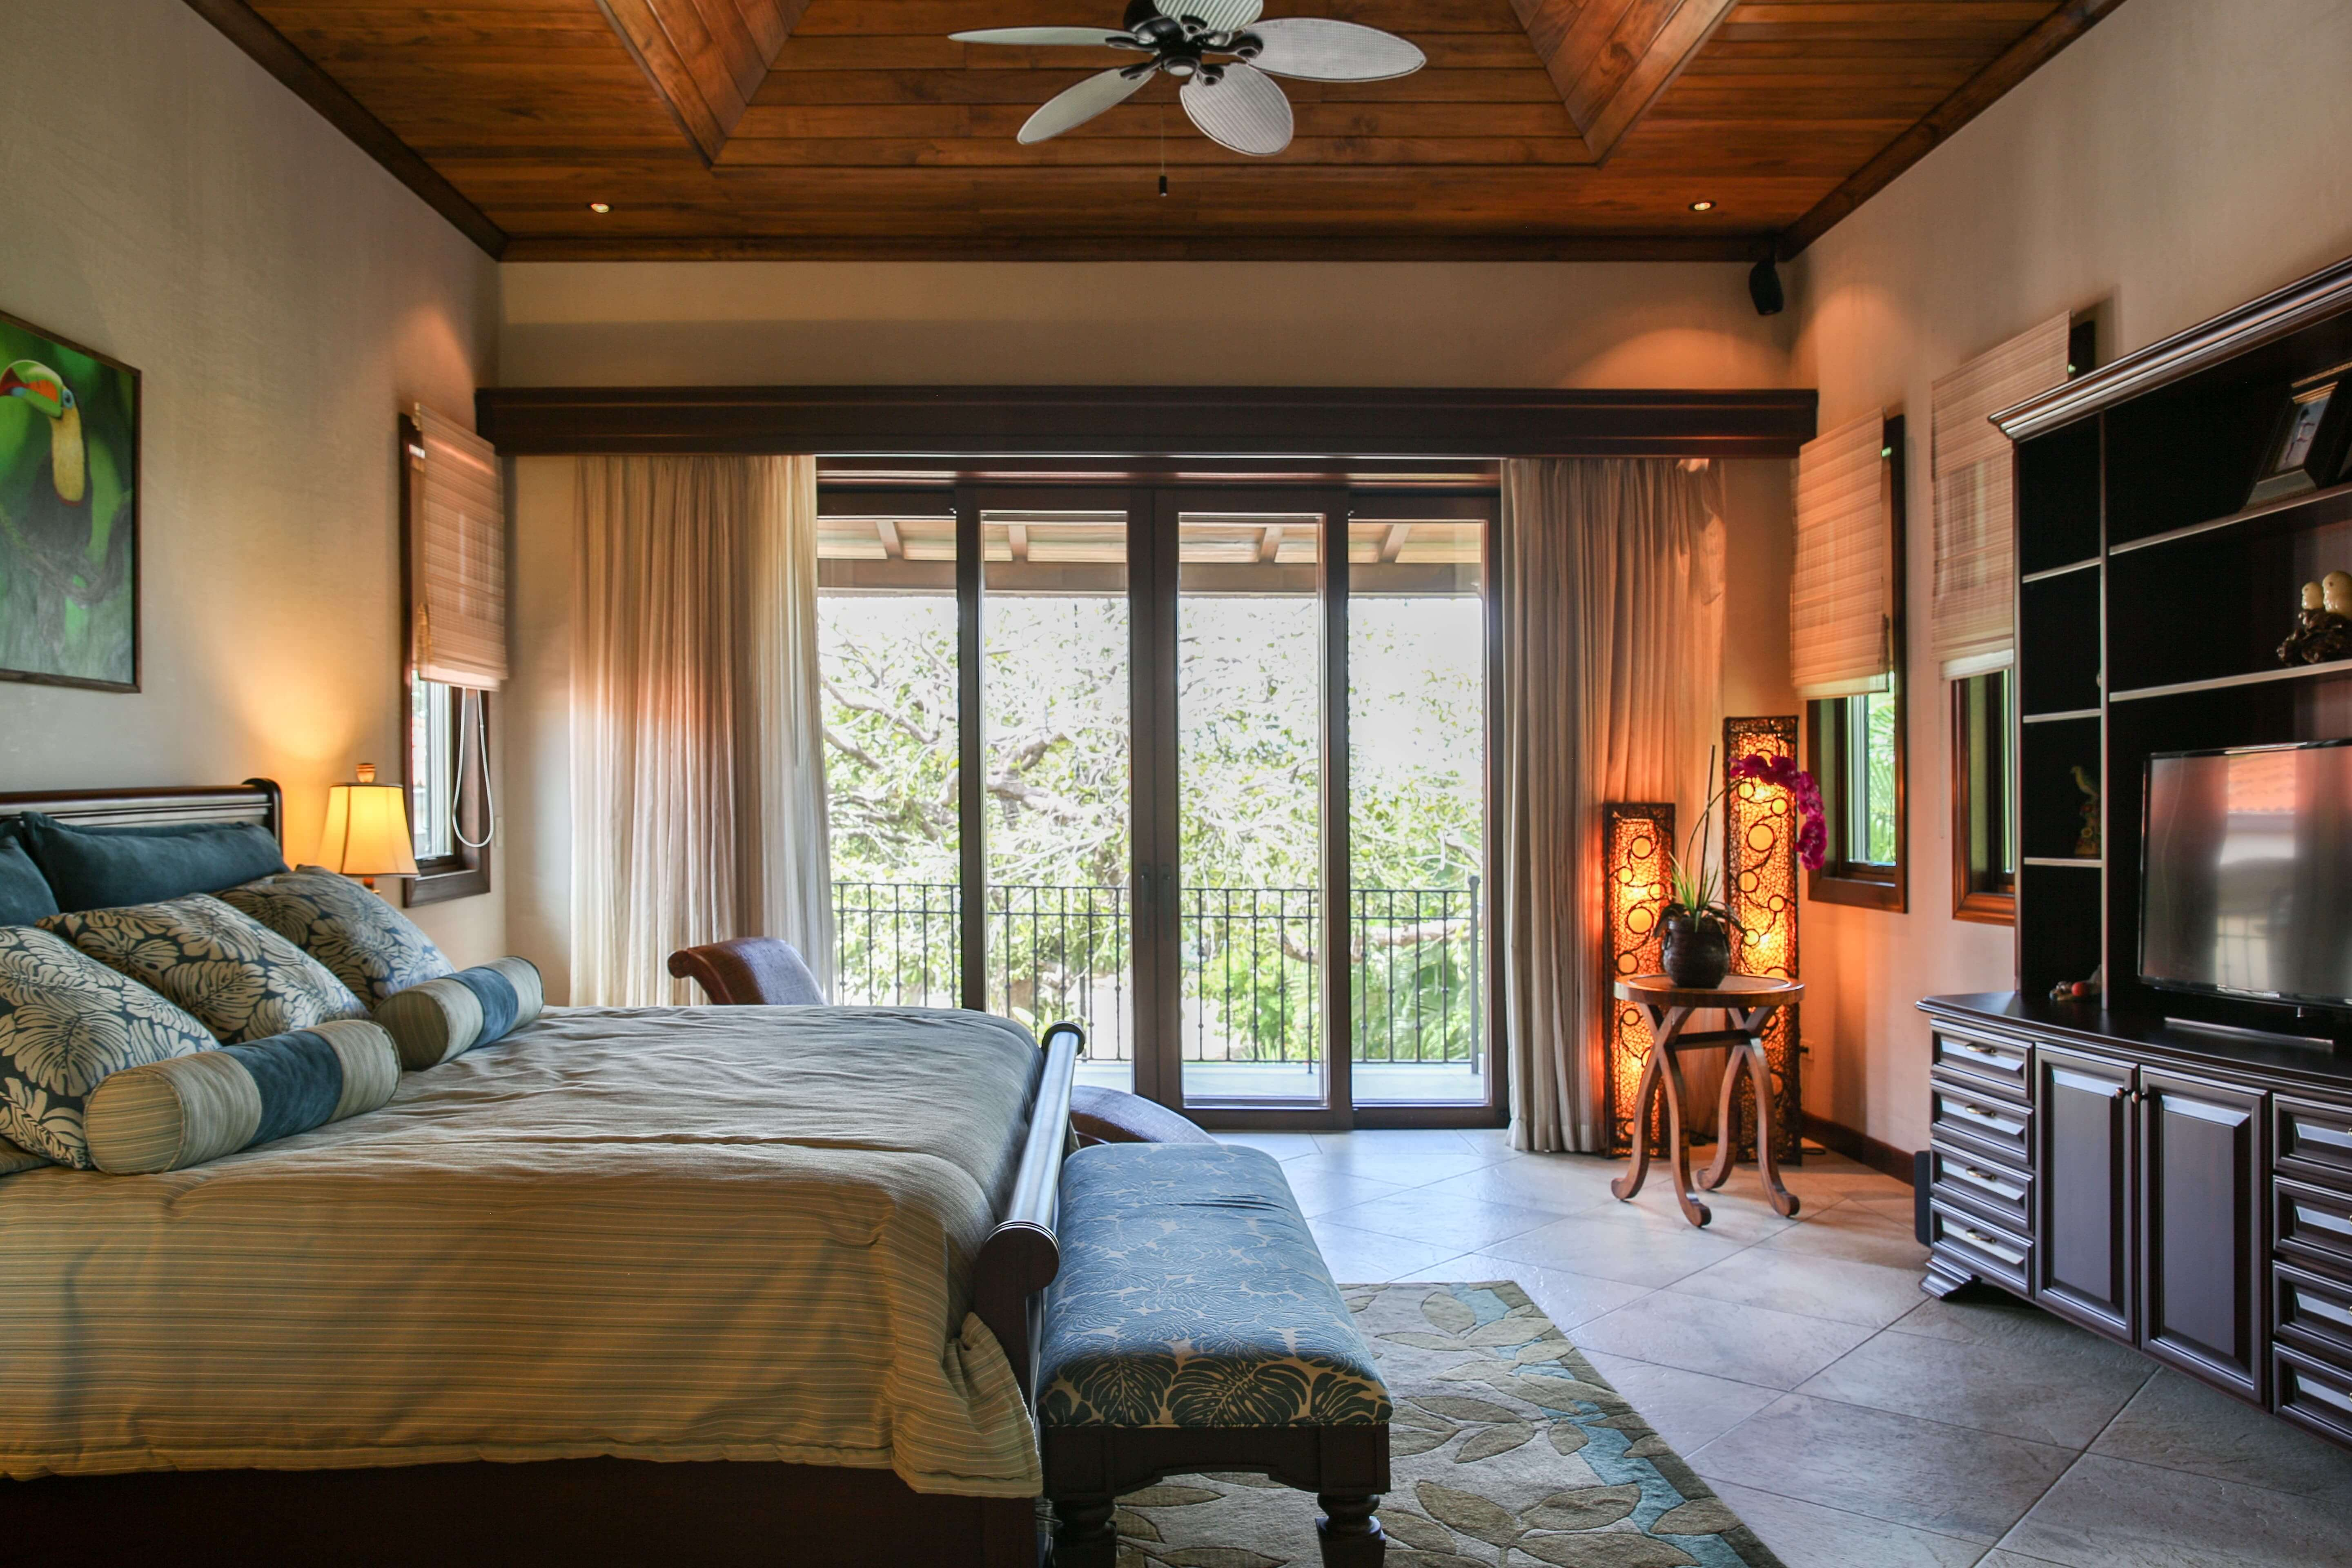 Bedroom with television and sliding glass door